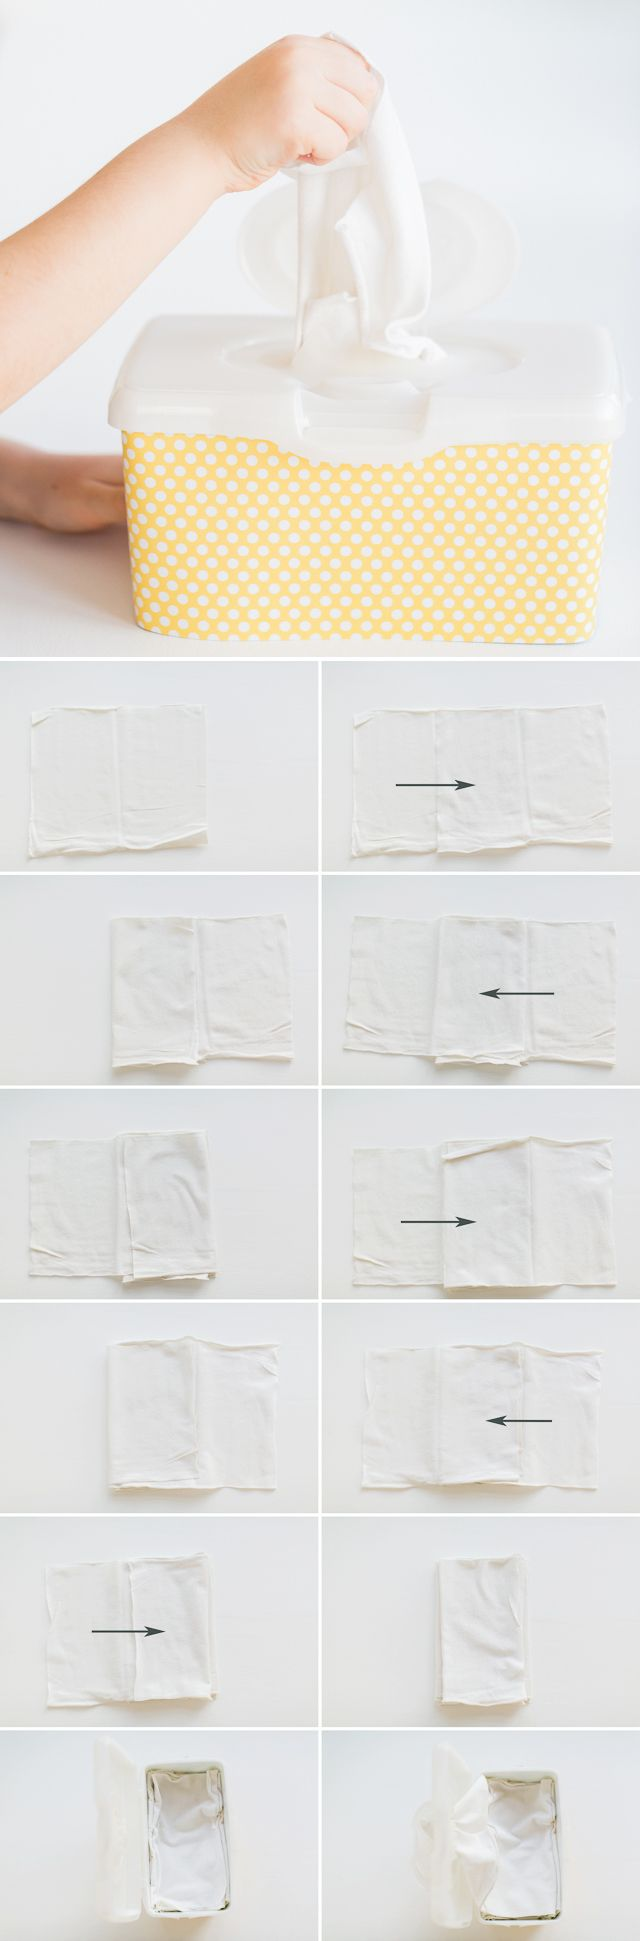 DIY Re-usable Cleaning Cloth Kits - This is a great Earth Day project to make with the kiddos. We used to go through so many paper towels at our house. We feel much better about using these reusable kits and the kiddos had a great time making them with me - super simple.